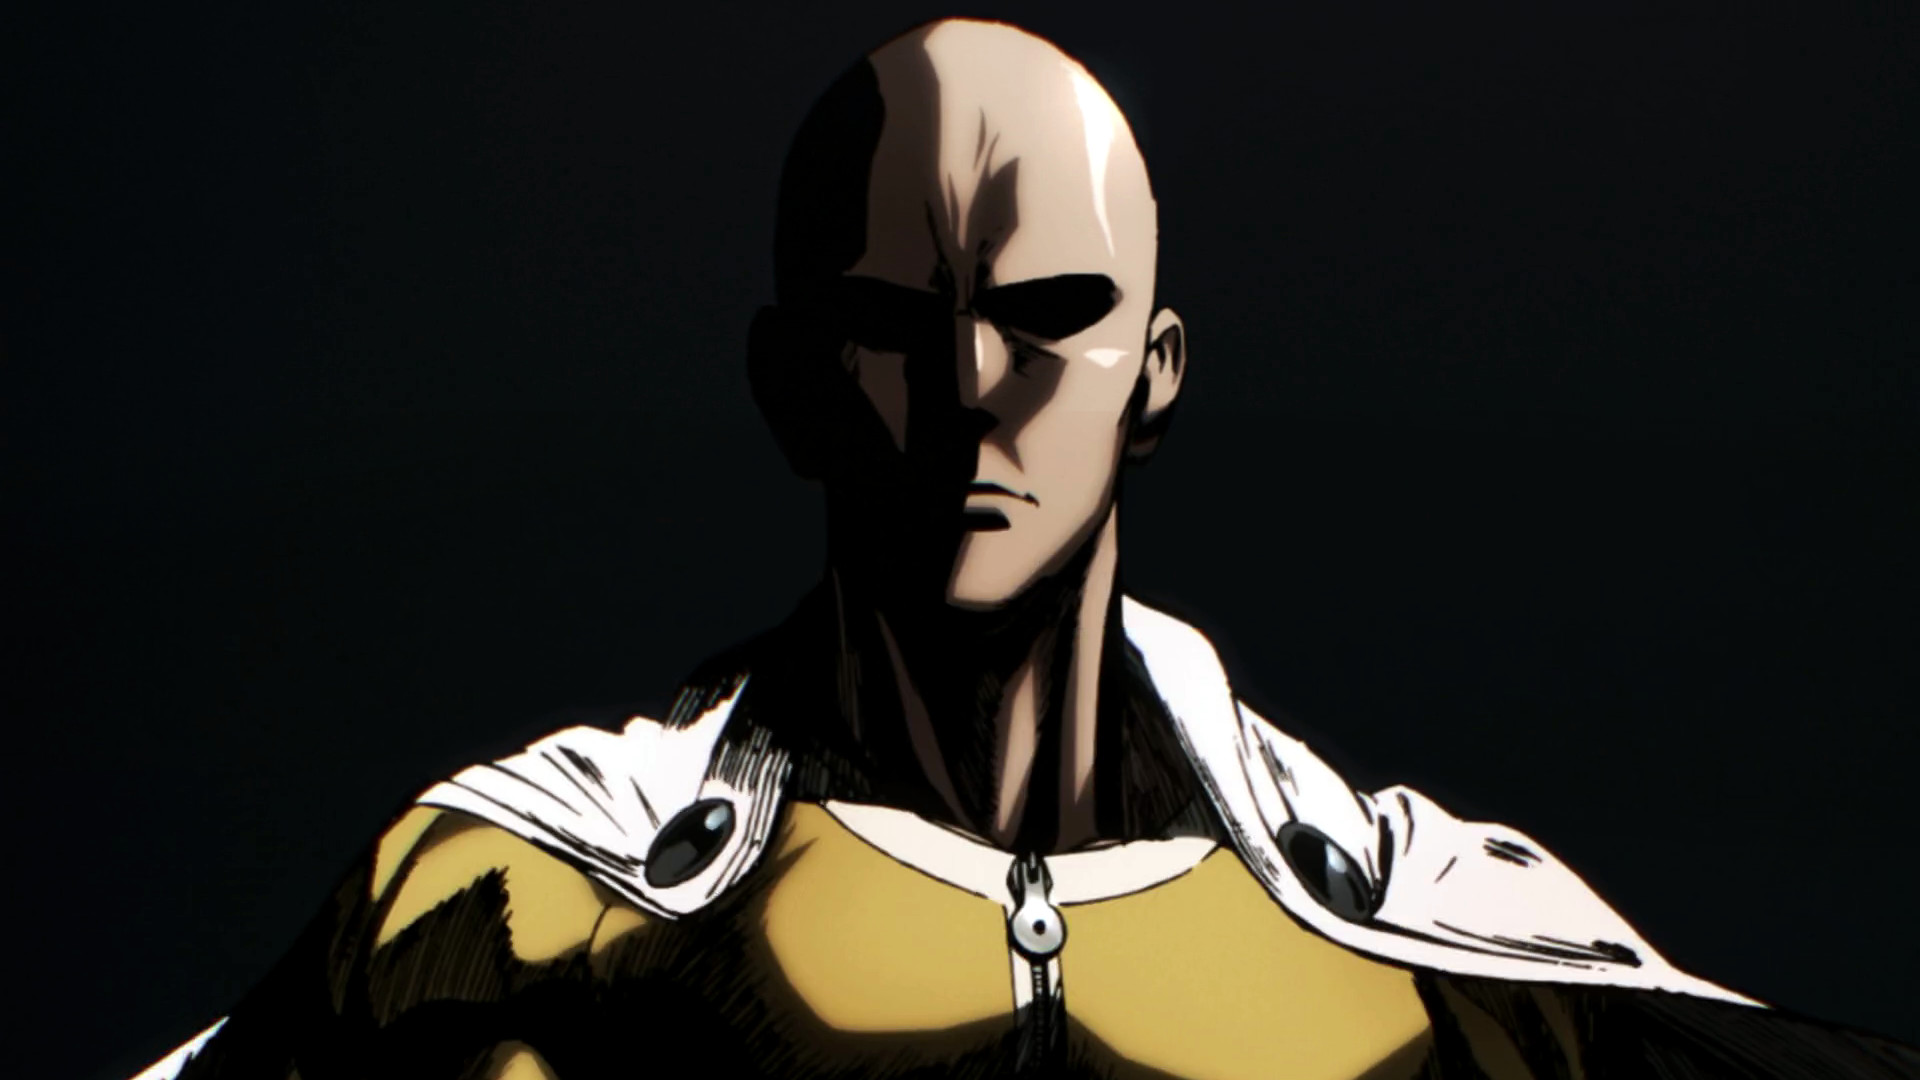 55 One Punch Man Wallpaper 4k